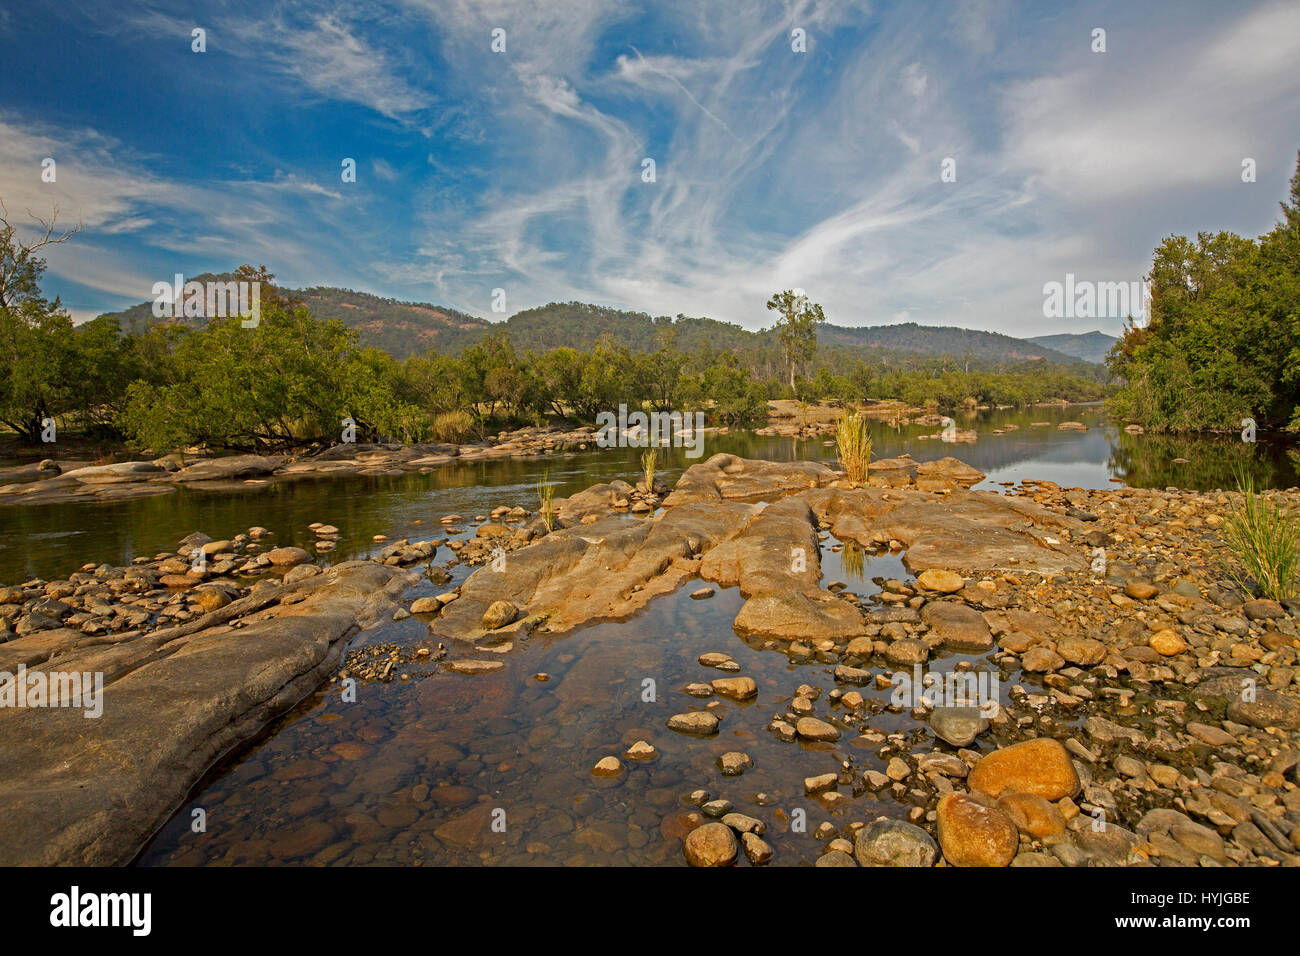 Panoramic view of rocky course of Mann River hemmed with forests & with ranges on horizon under blue sky near Coombadja Stock Photo